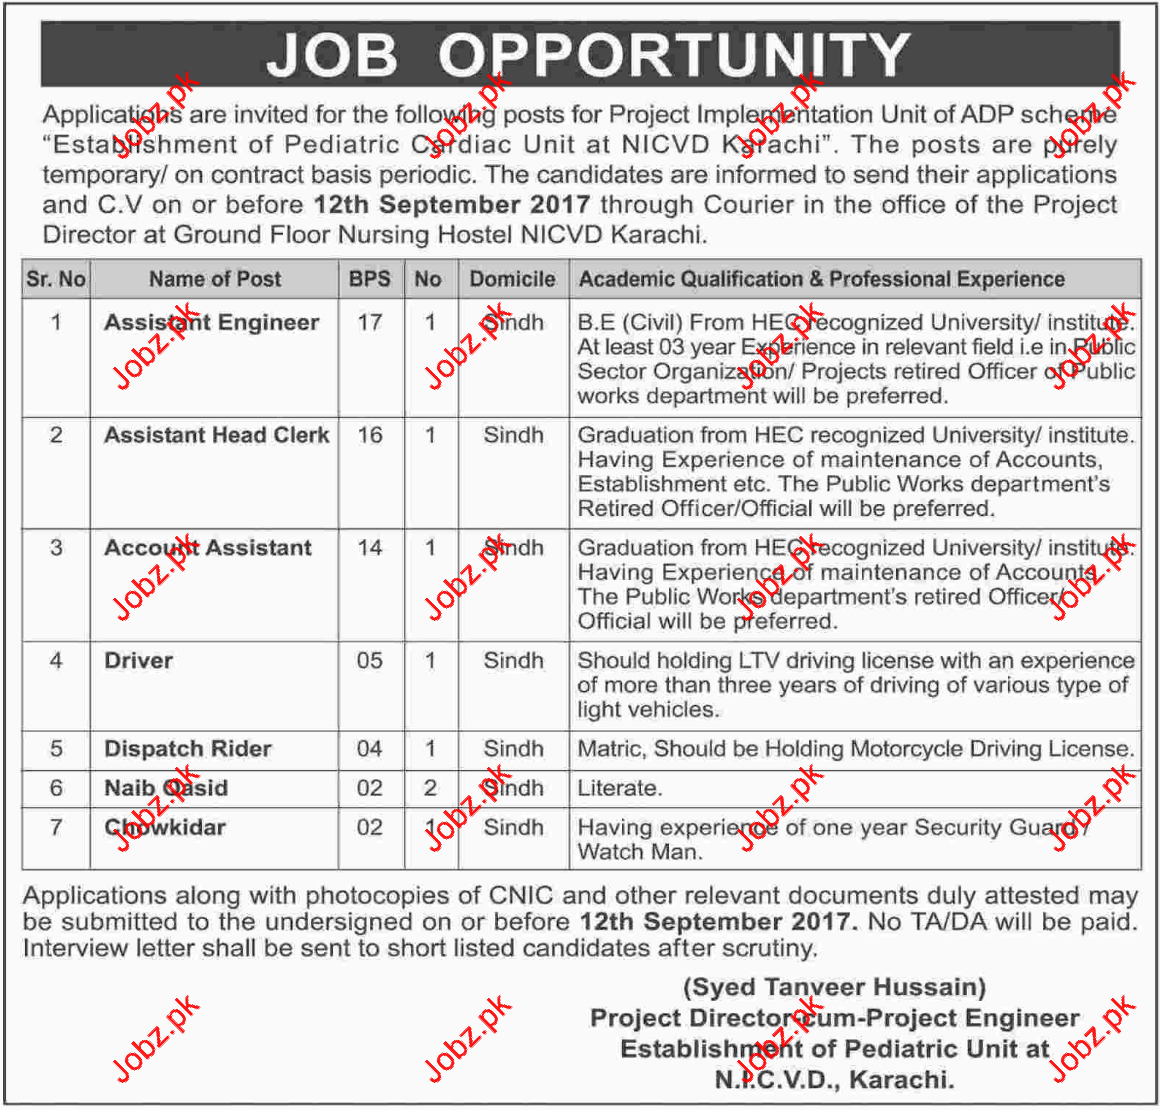 Jobs in Pediatric Unit NICVD Karachi